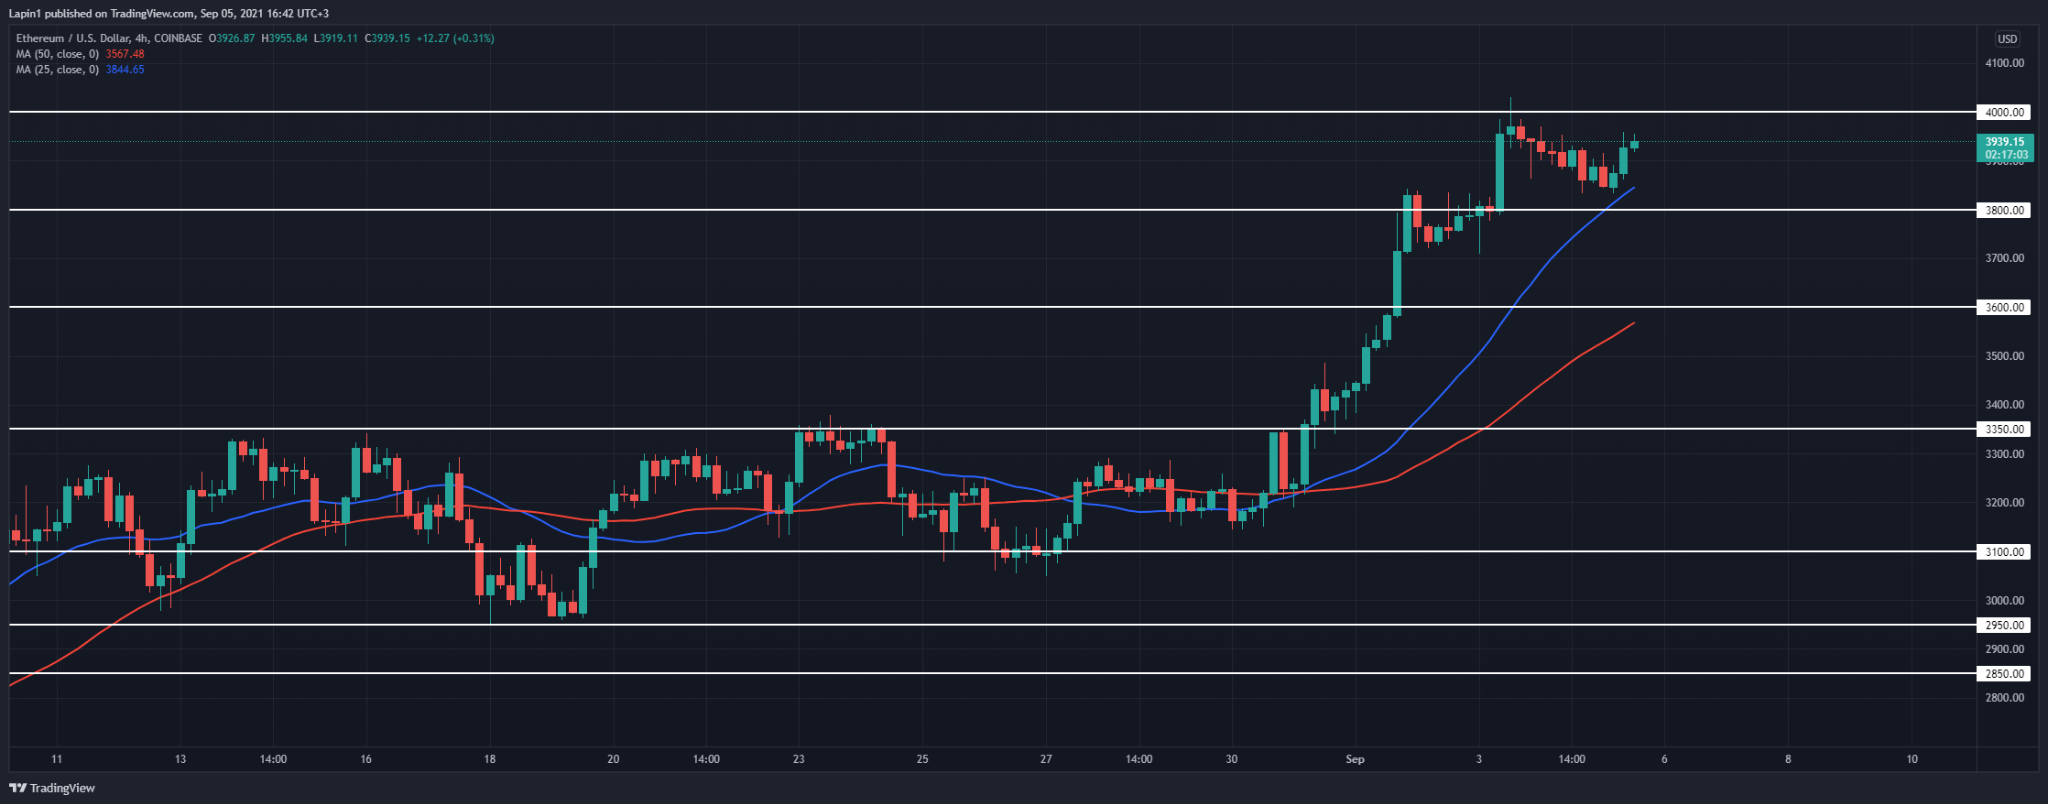 Ethereum Price Analysis: ETH sets higher low, ready to break $4,000 again?